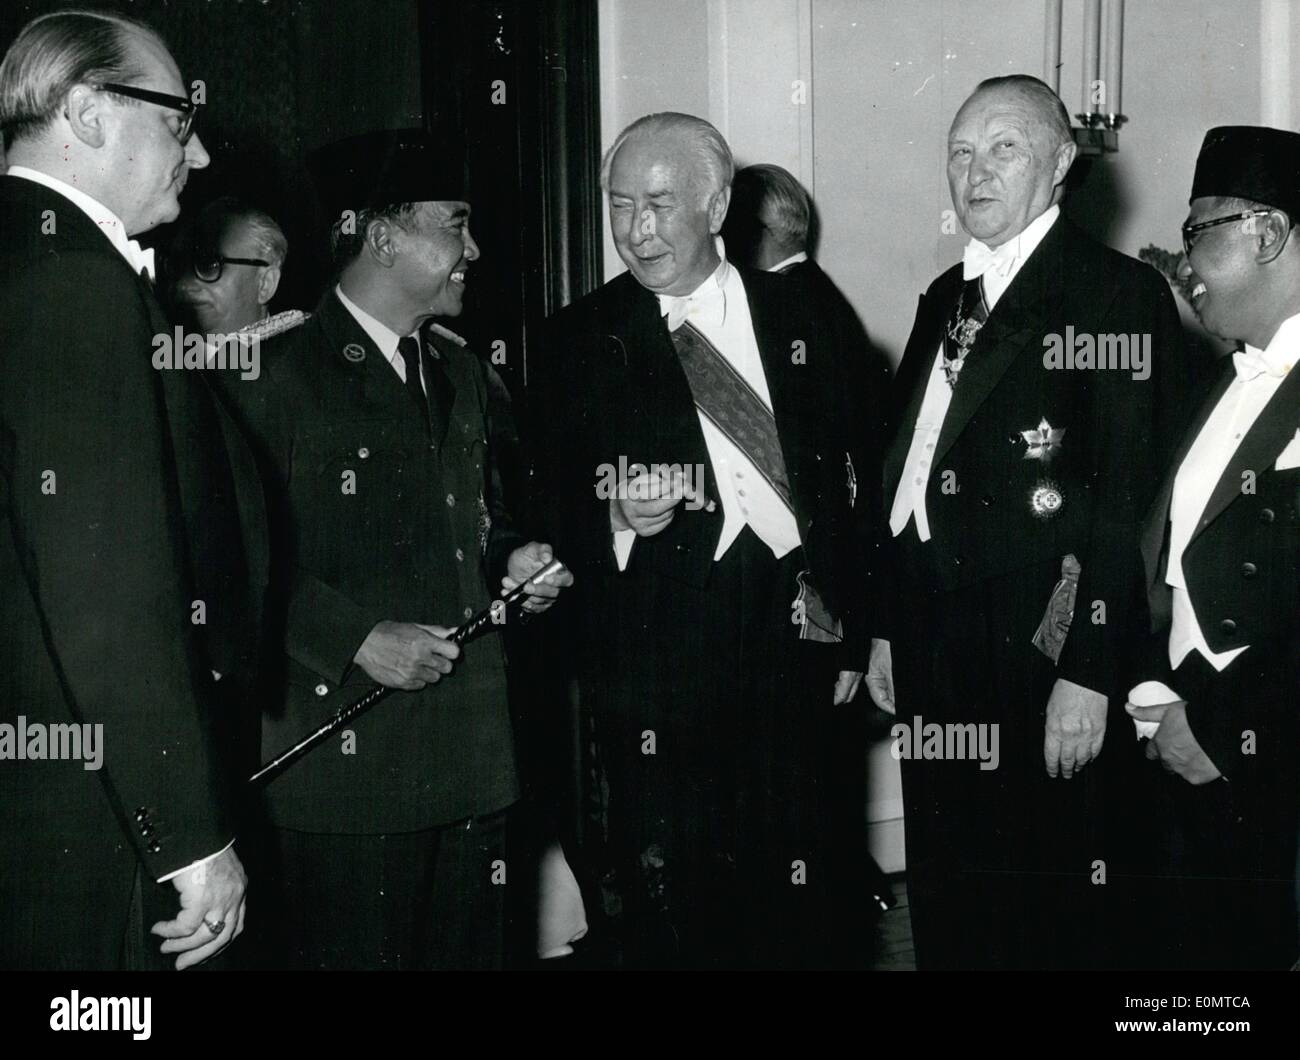 Jun. 06, 1956 - President Sukarno... Was received officially by President Heuss. The German President invited 800 guests from politics, economy and industry for his Indonesian guest. PS: (f.l.t.r.) Foreign Minister Heinrich v. Brentano, president of Indonesia, Sukarno, president Heuss and chancellor Dr. Konrad Adenauer. - Stock Image